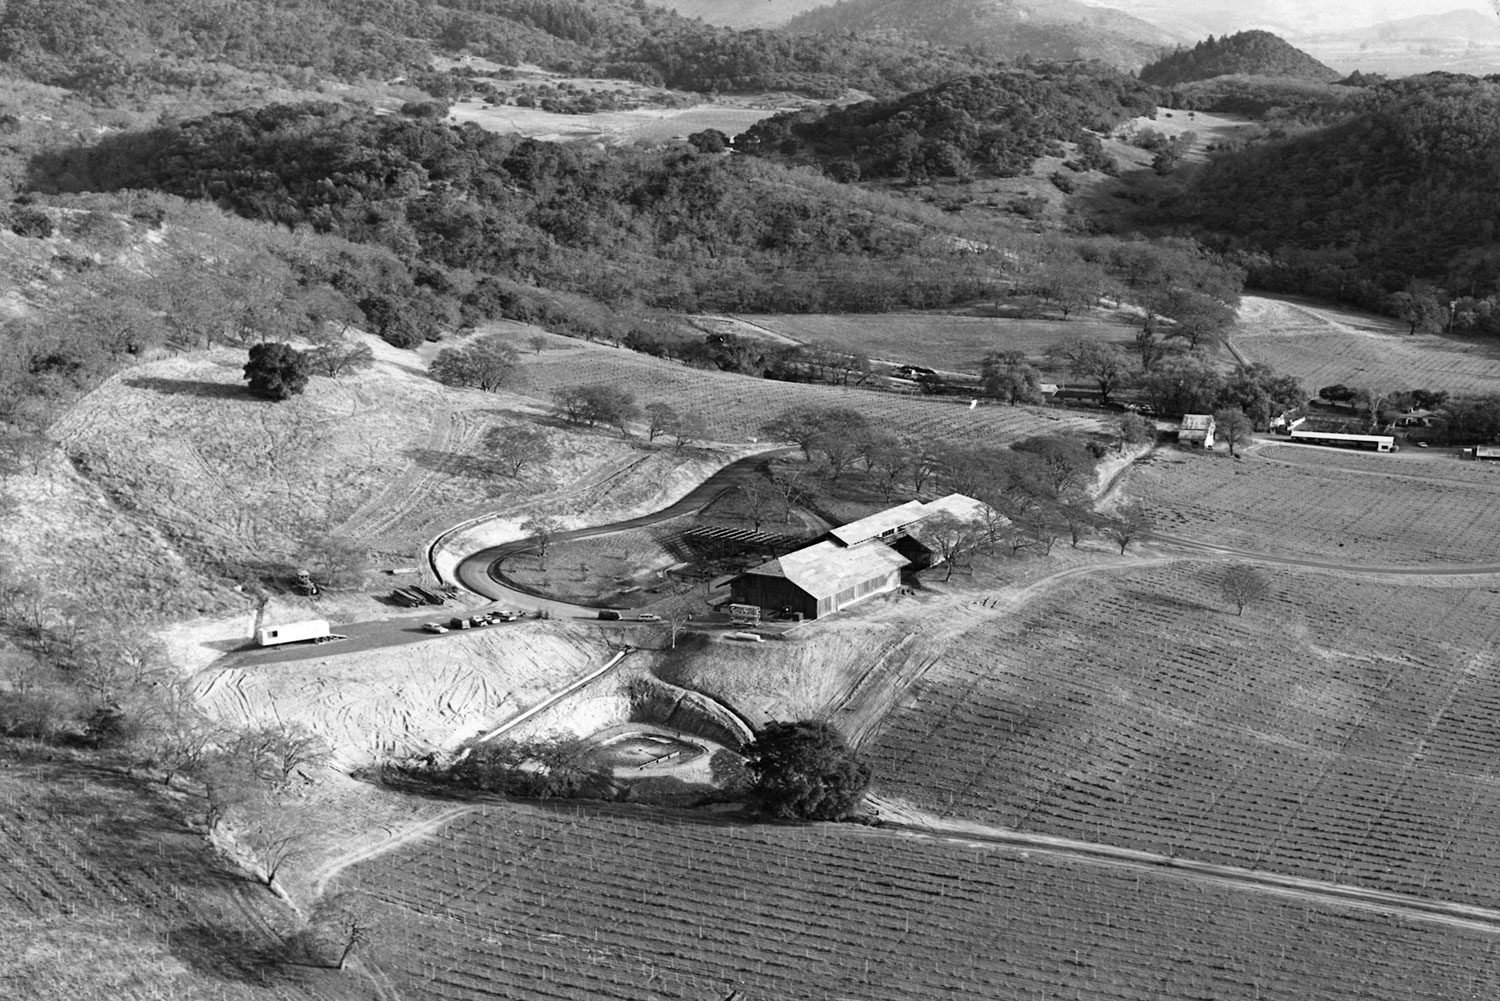 Historical image of the Joseph Phelps winery being built in 1974